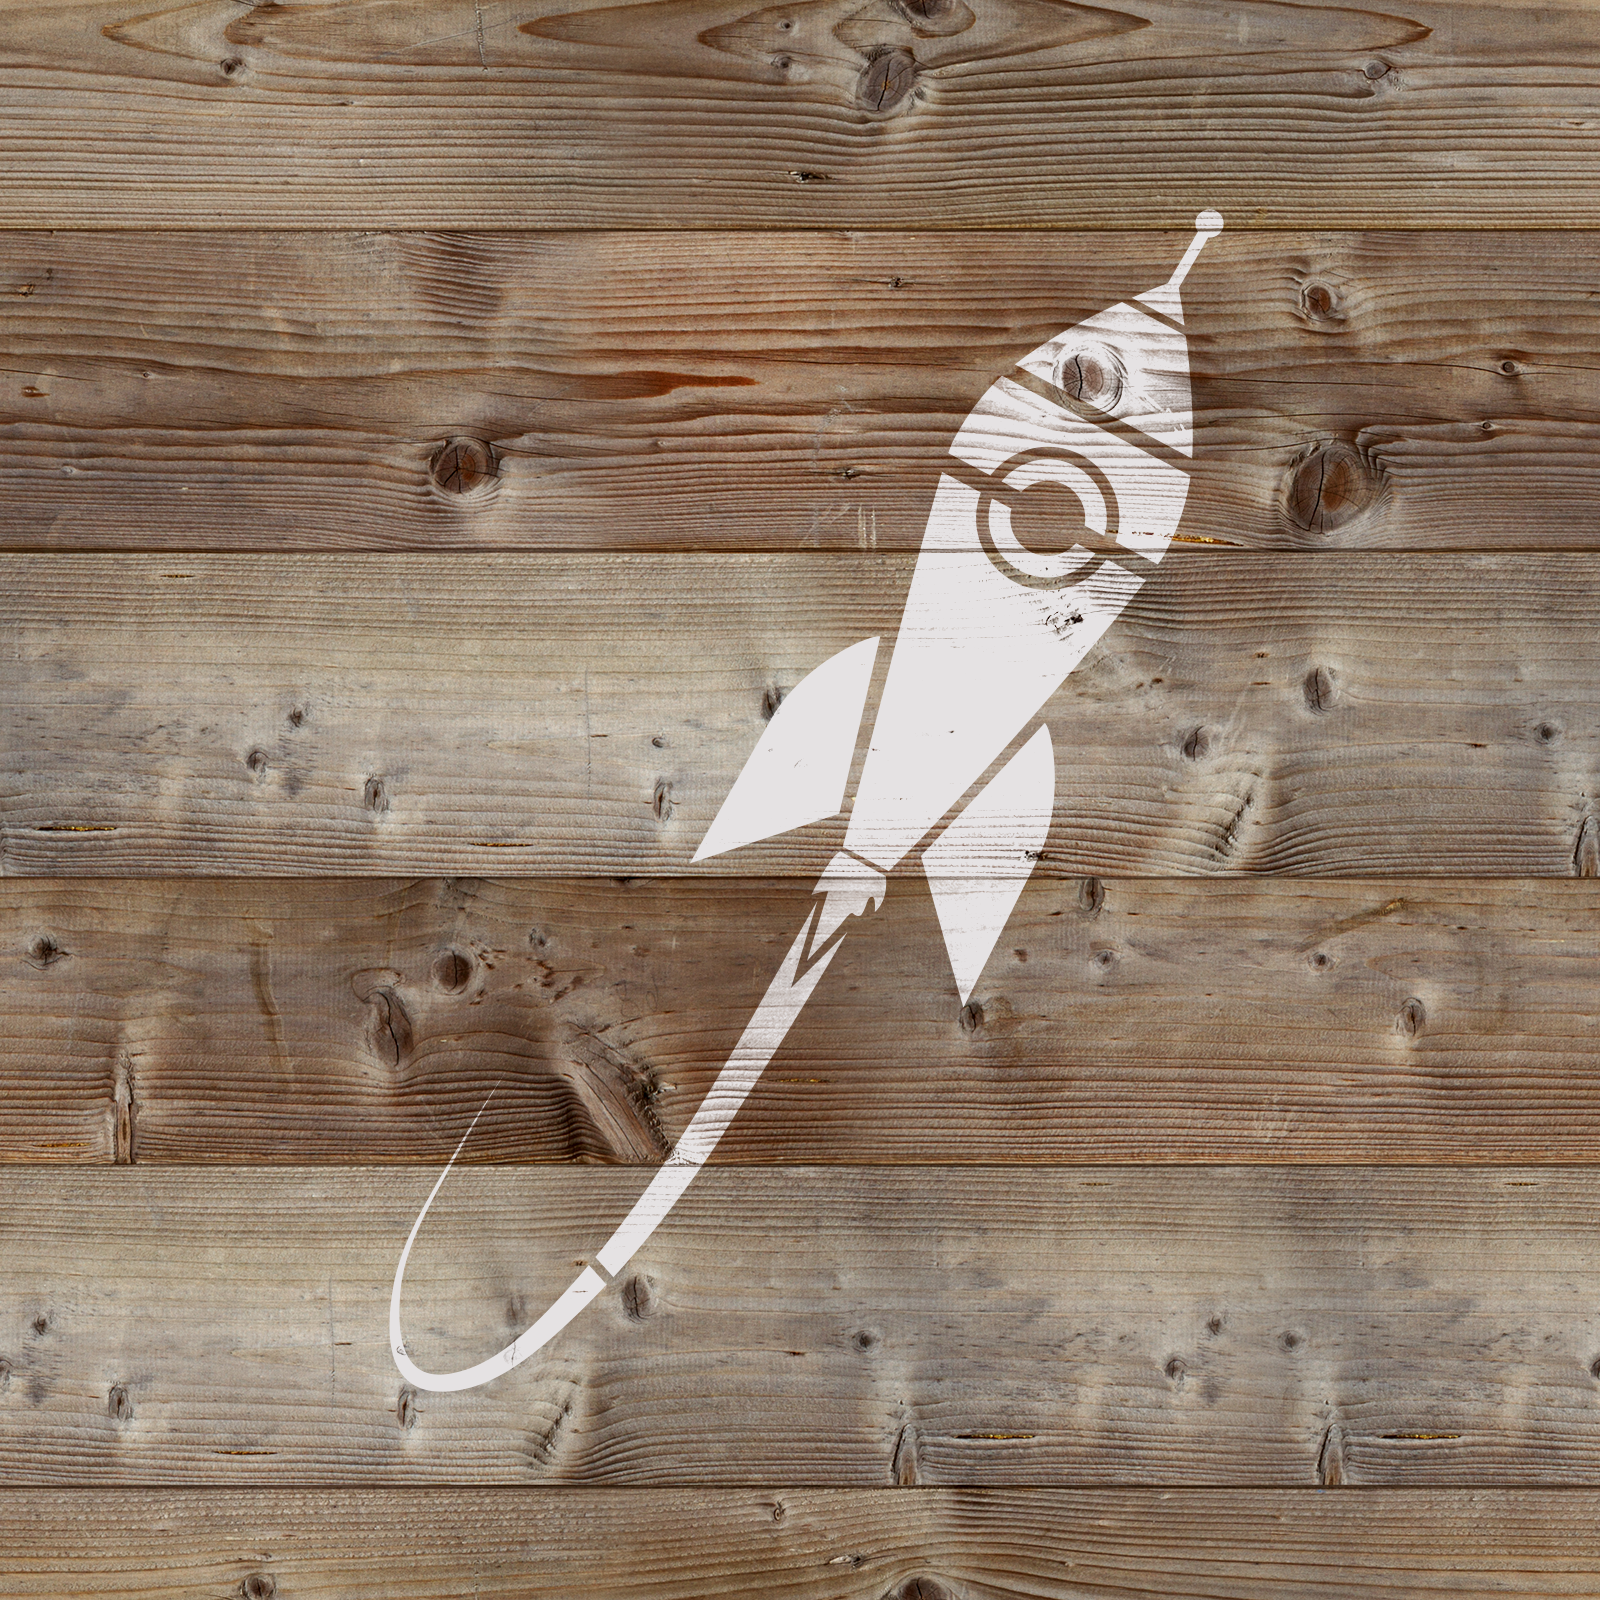 Rocket Ship Stencil - Reusable Stencils of Rocket Ship in Multiple Sizes